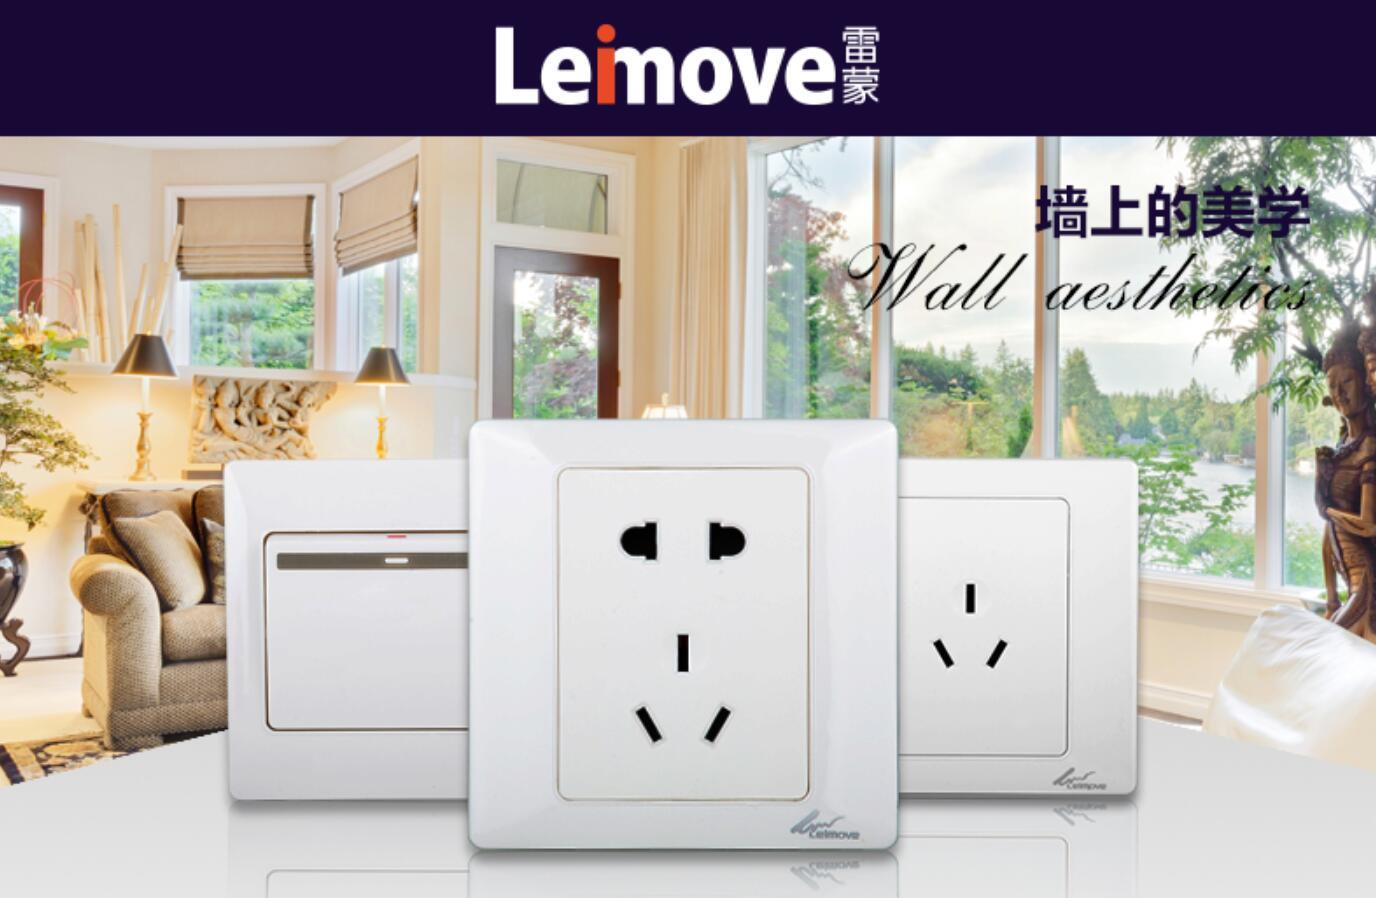 Leimove-Find Electrical Control Switch Electrical Switch Box From Leimove Lighting